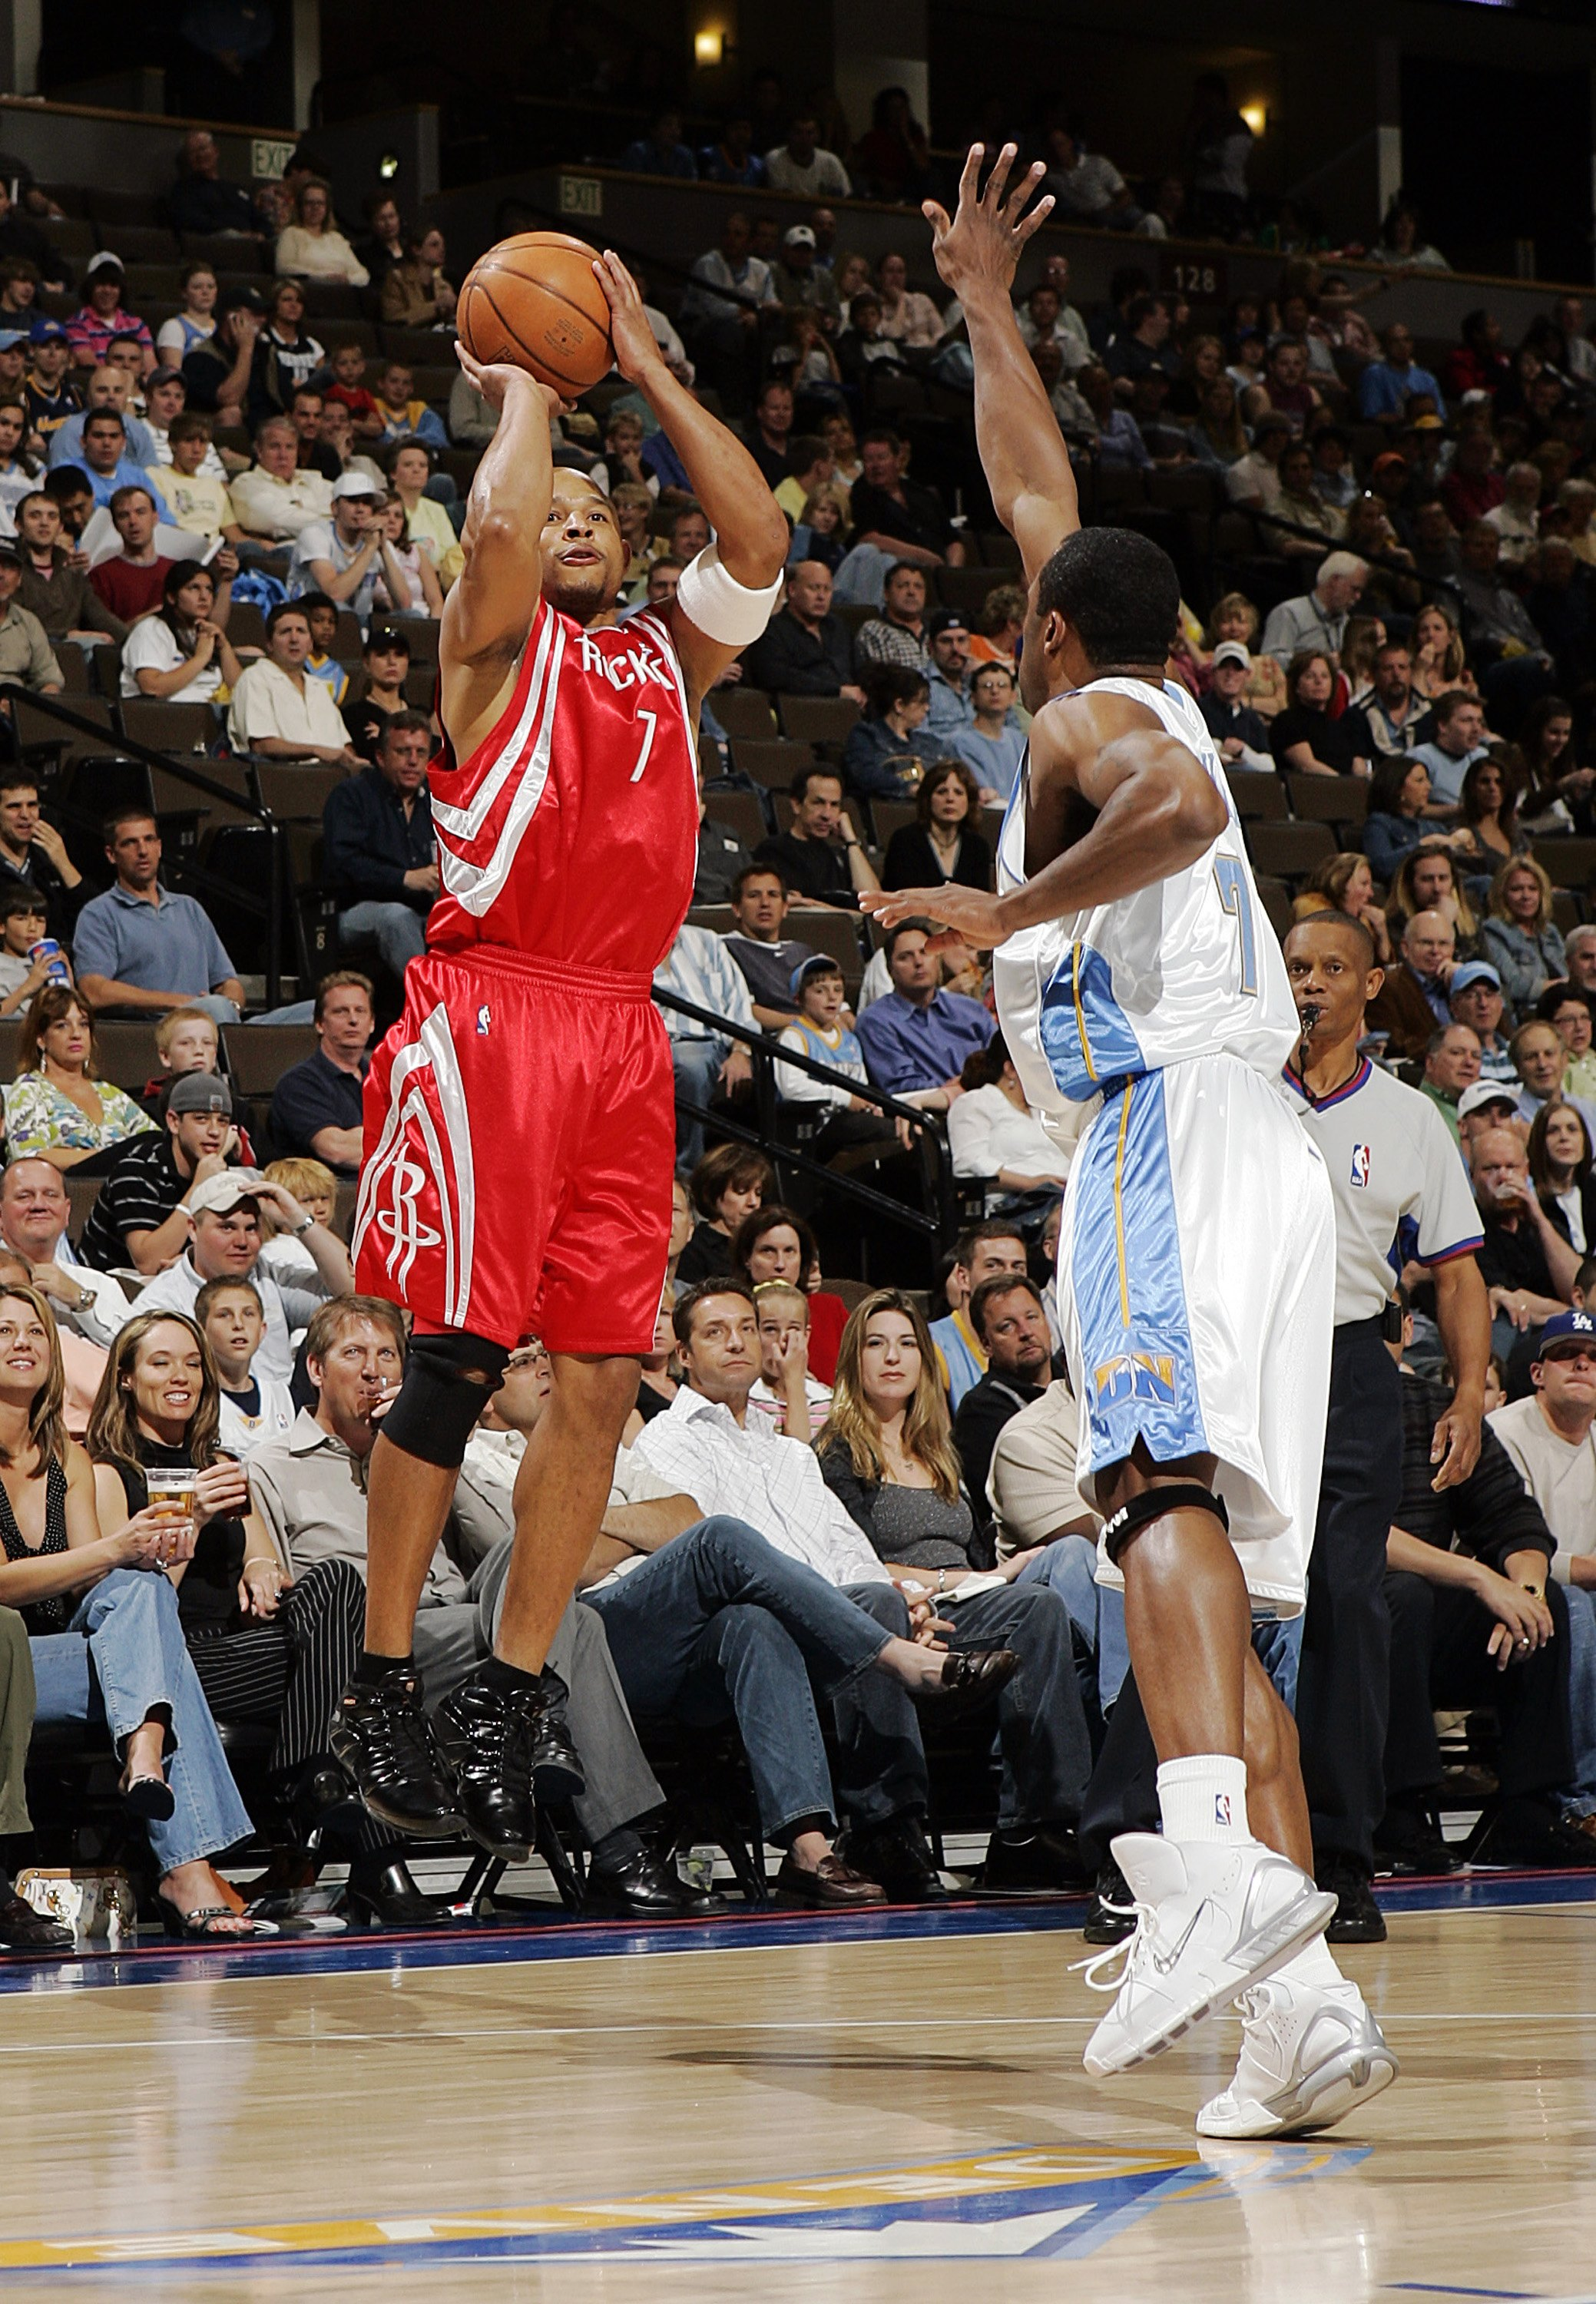 DENVER - APRIL 17:  David Wesley #7 of the Houston Rockets shoots over Greg Buckner #7 of the Denver Nuggets in the first quarter on April 17, 2006 at the Pepsi Center in Denver, Colorado.  NOTE TO USER: USER expressly acknowledges and agrees that, by dow